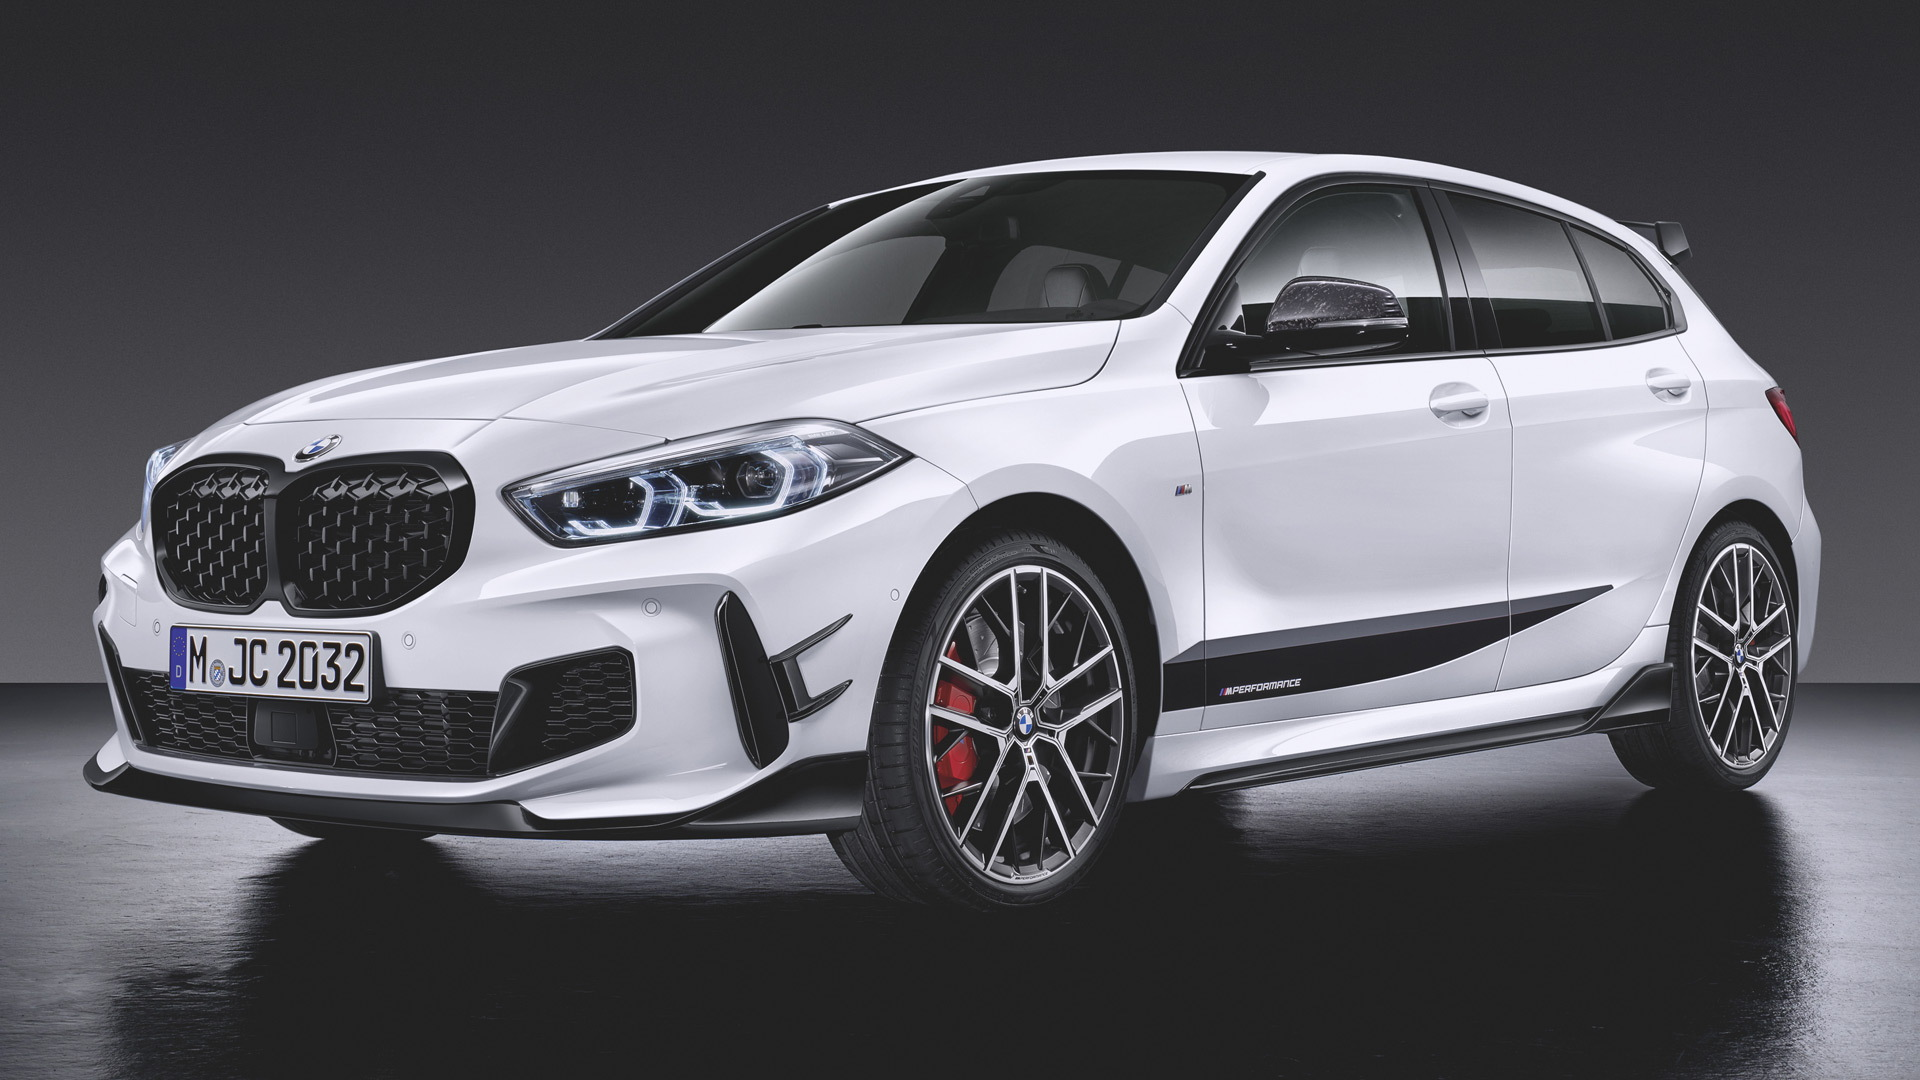 2019 BMW 1-Series hatchback fitted with M Performance Parts